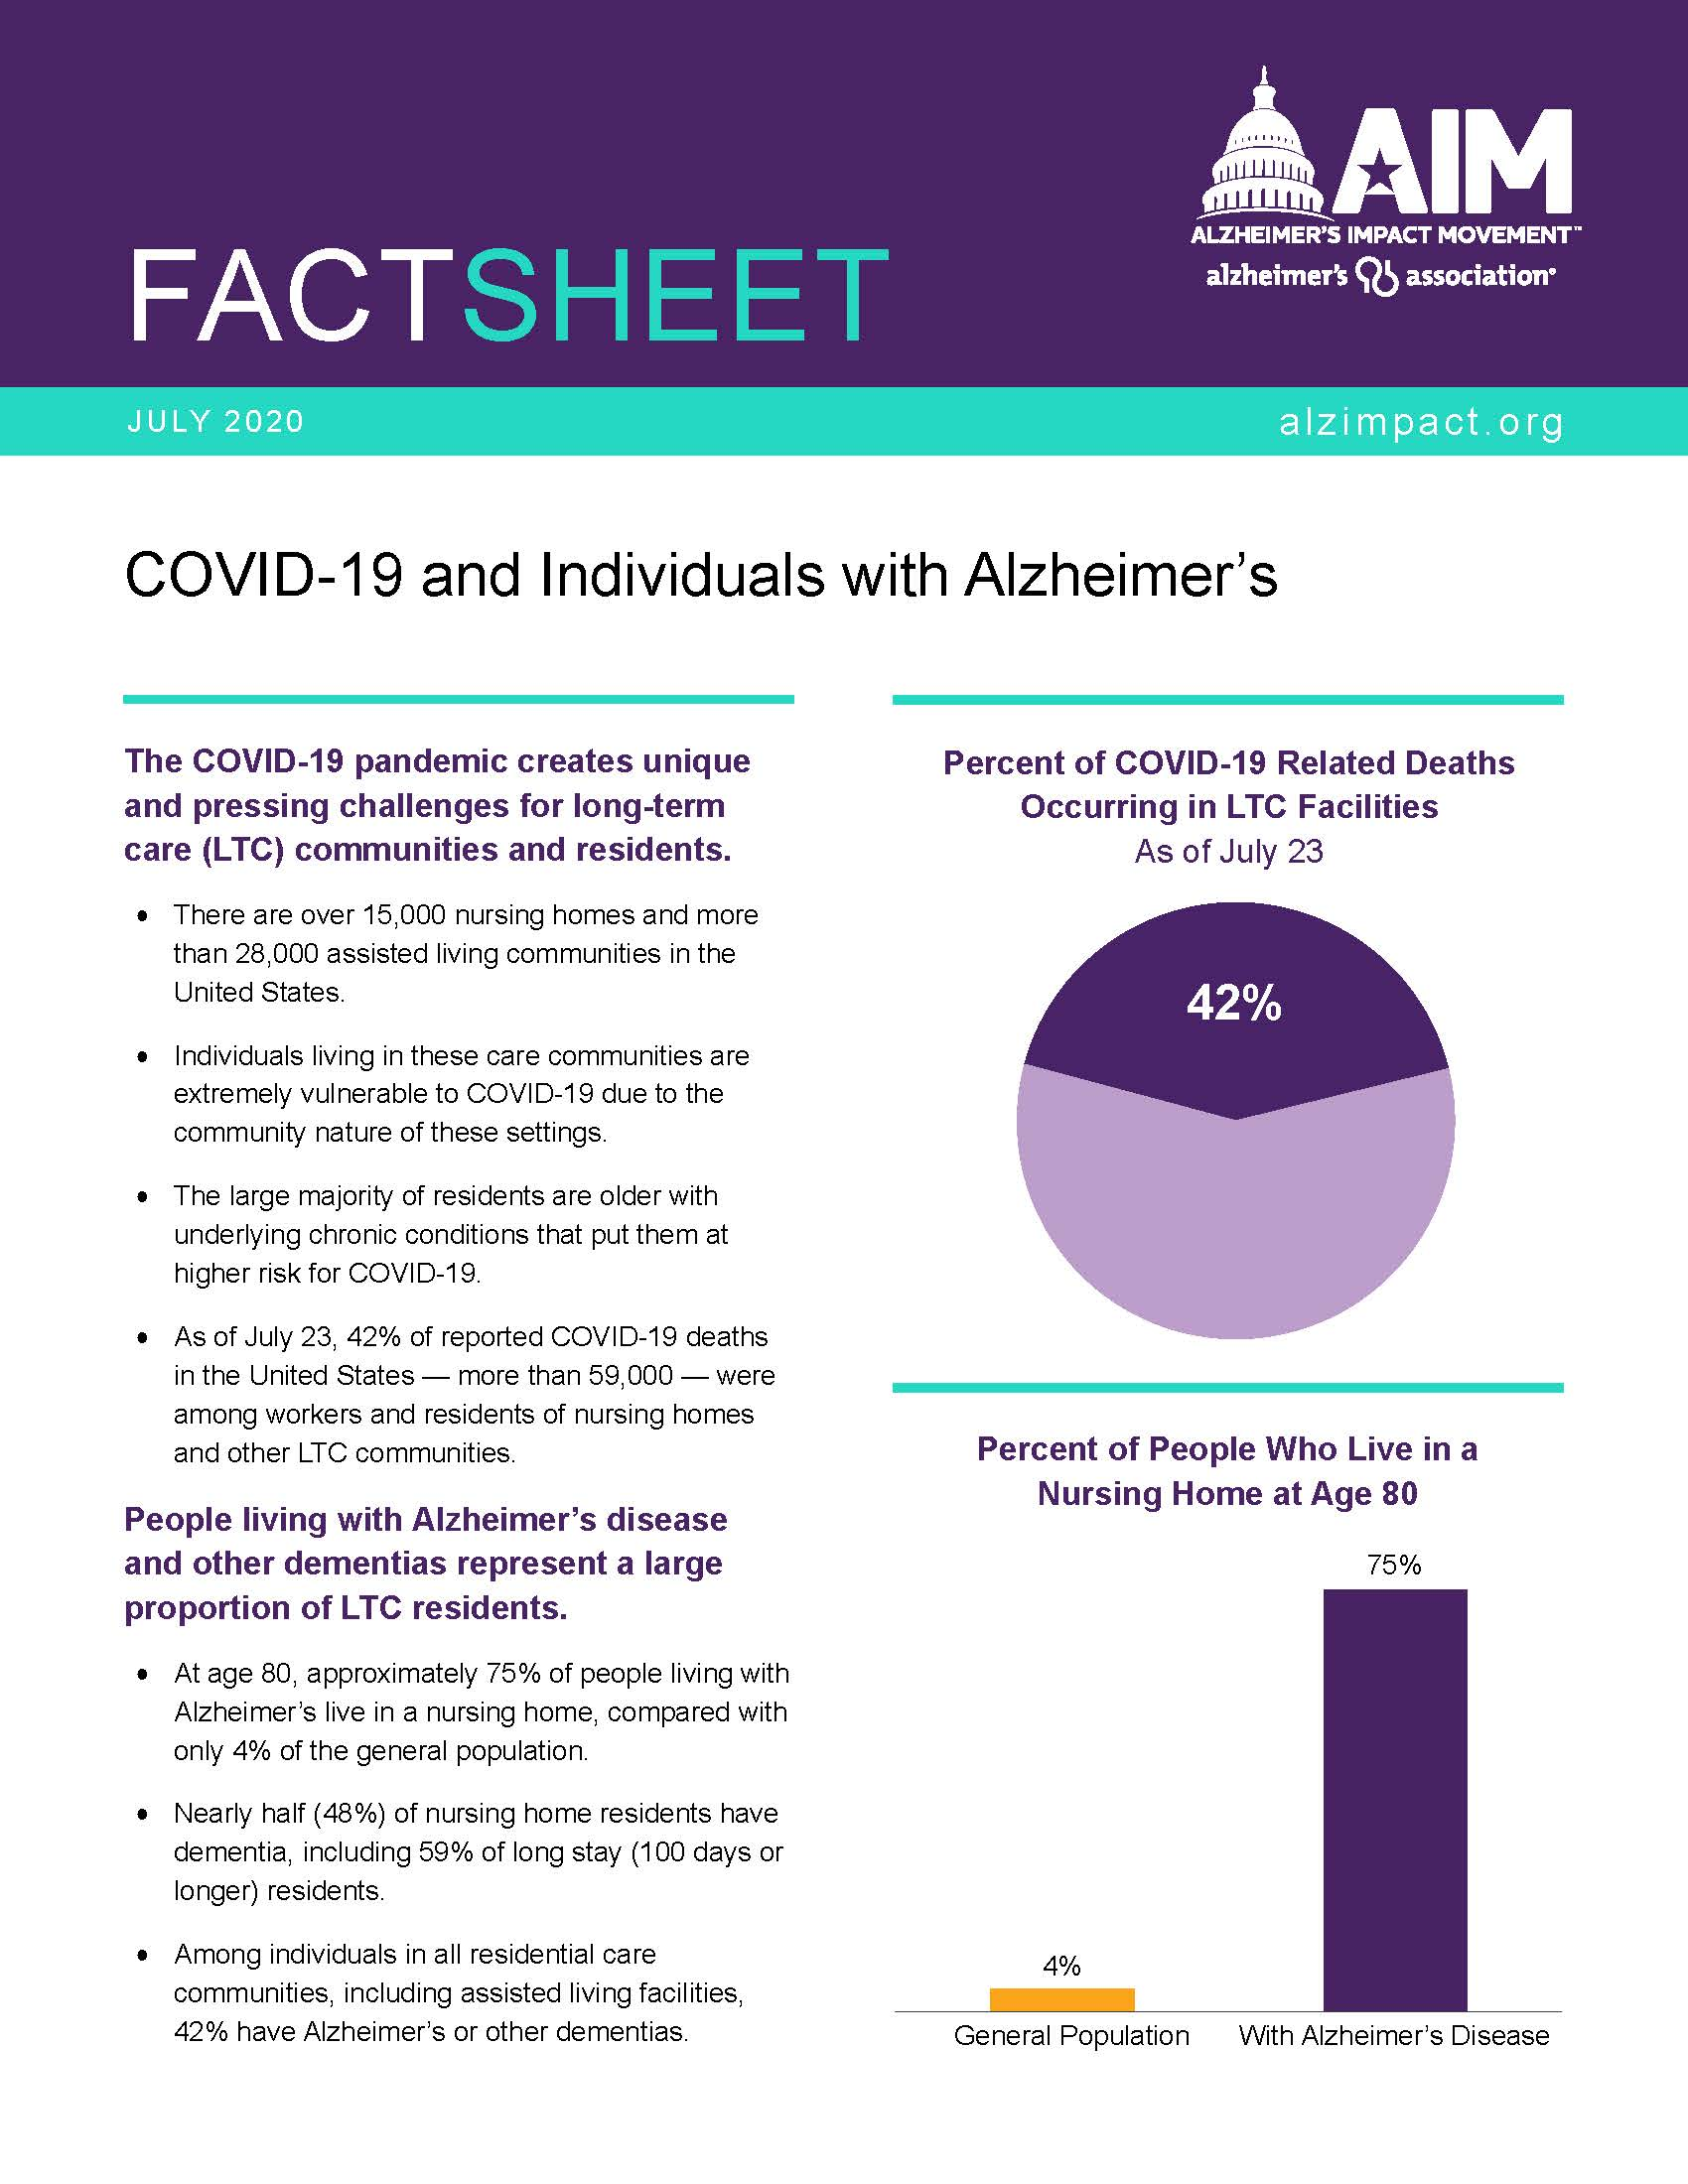 COVID-19 & Individuals with Alzheimer's Factsheet